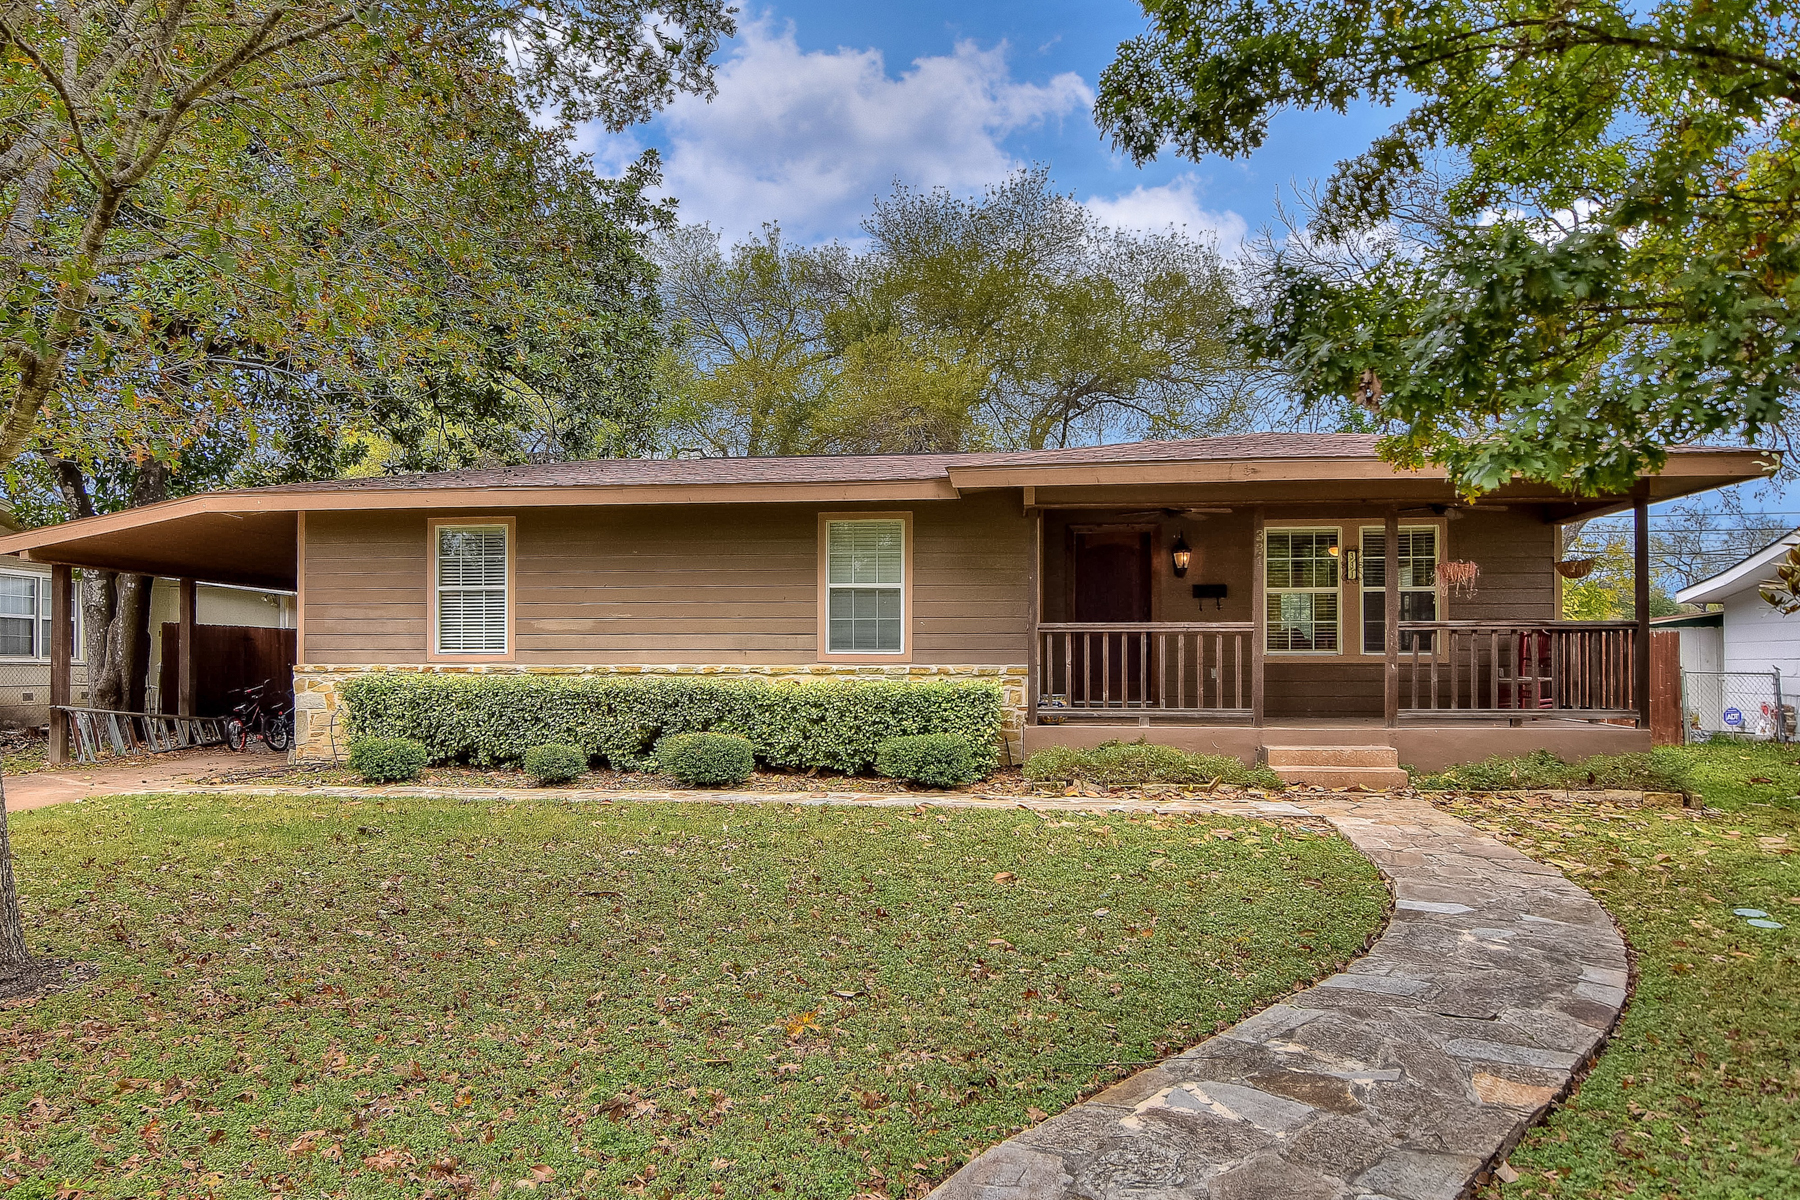 Single Family Home for Sale at Great Home in Terrell Heights 331 Larchmont Dr San Antonio, Texas 78209 United States